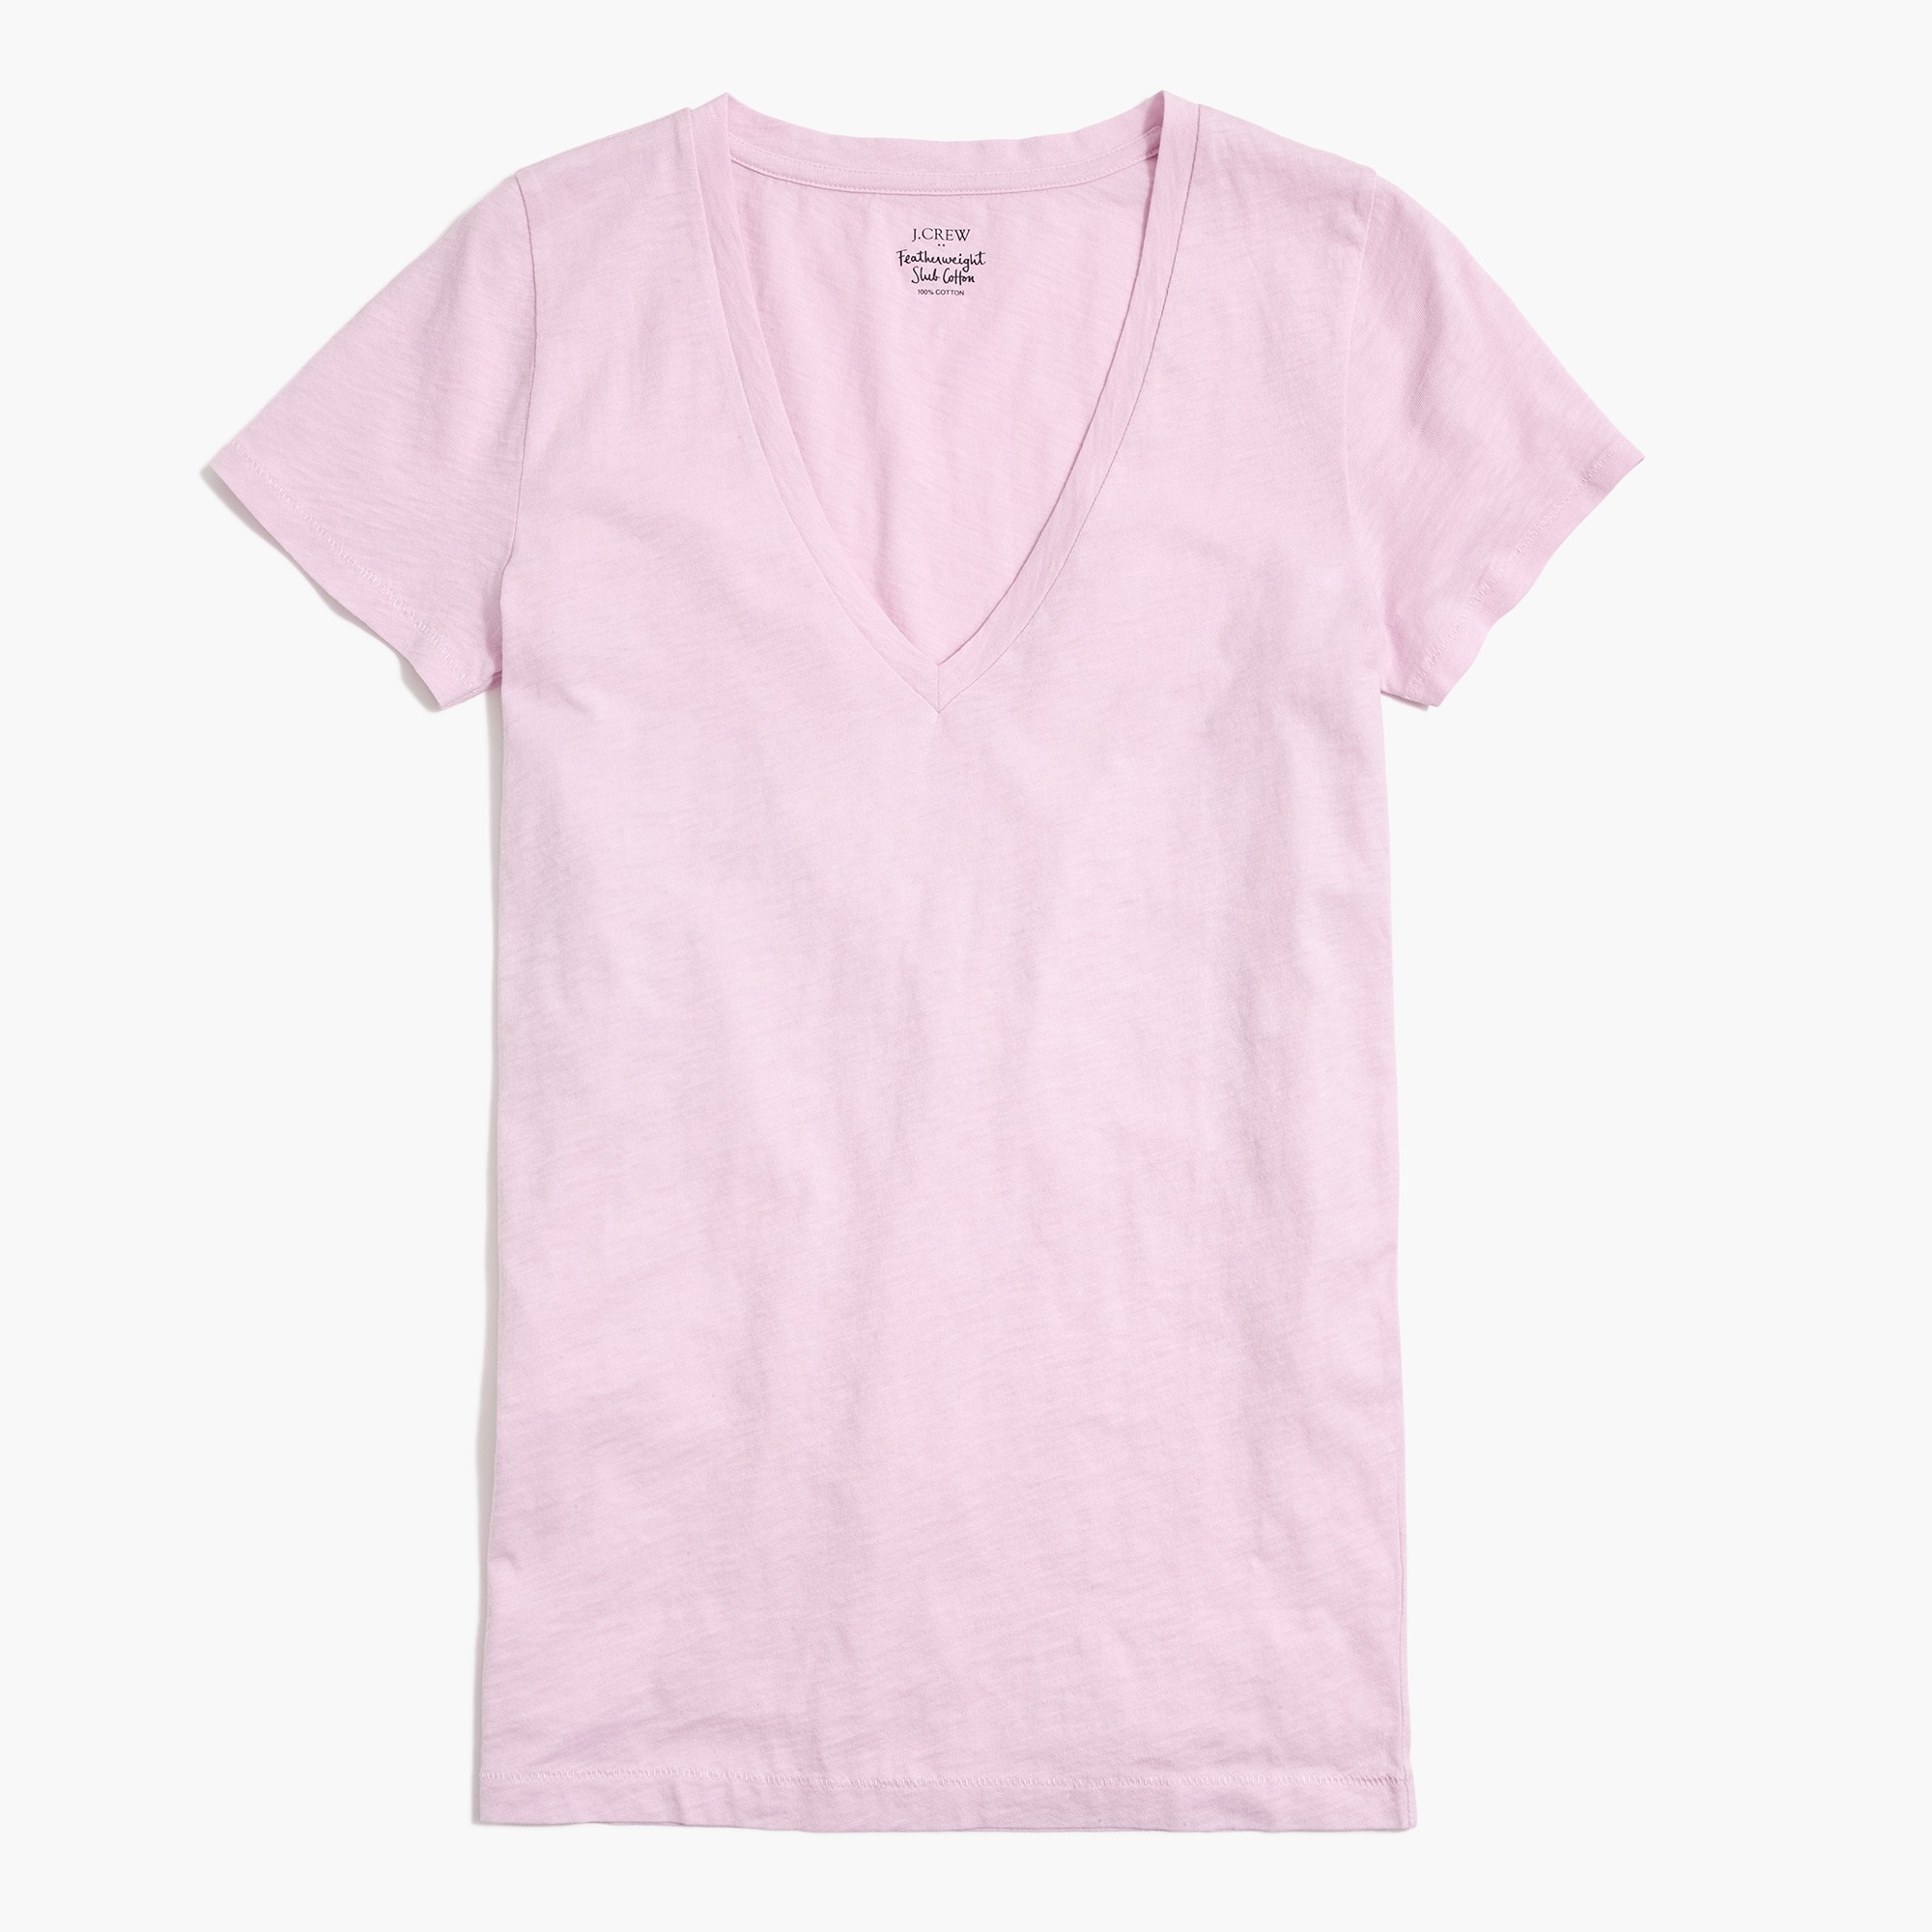 Featherweight slub cotton T-shirt